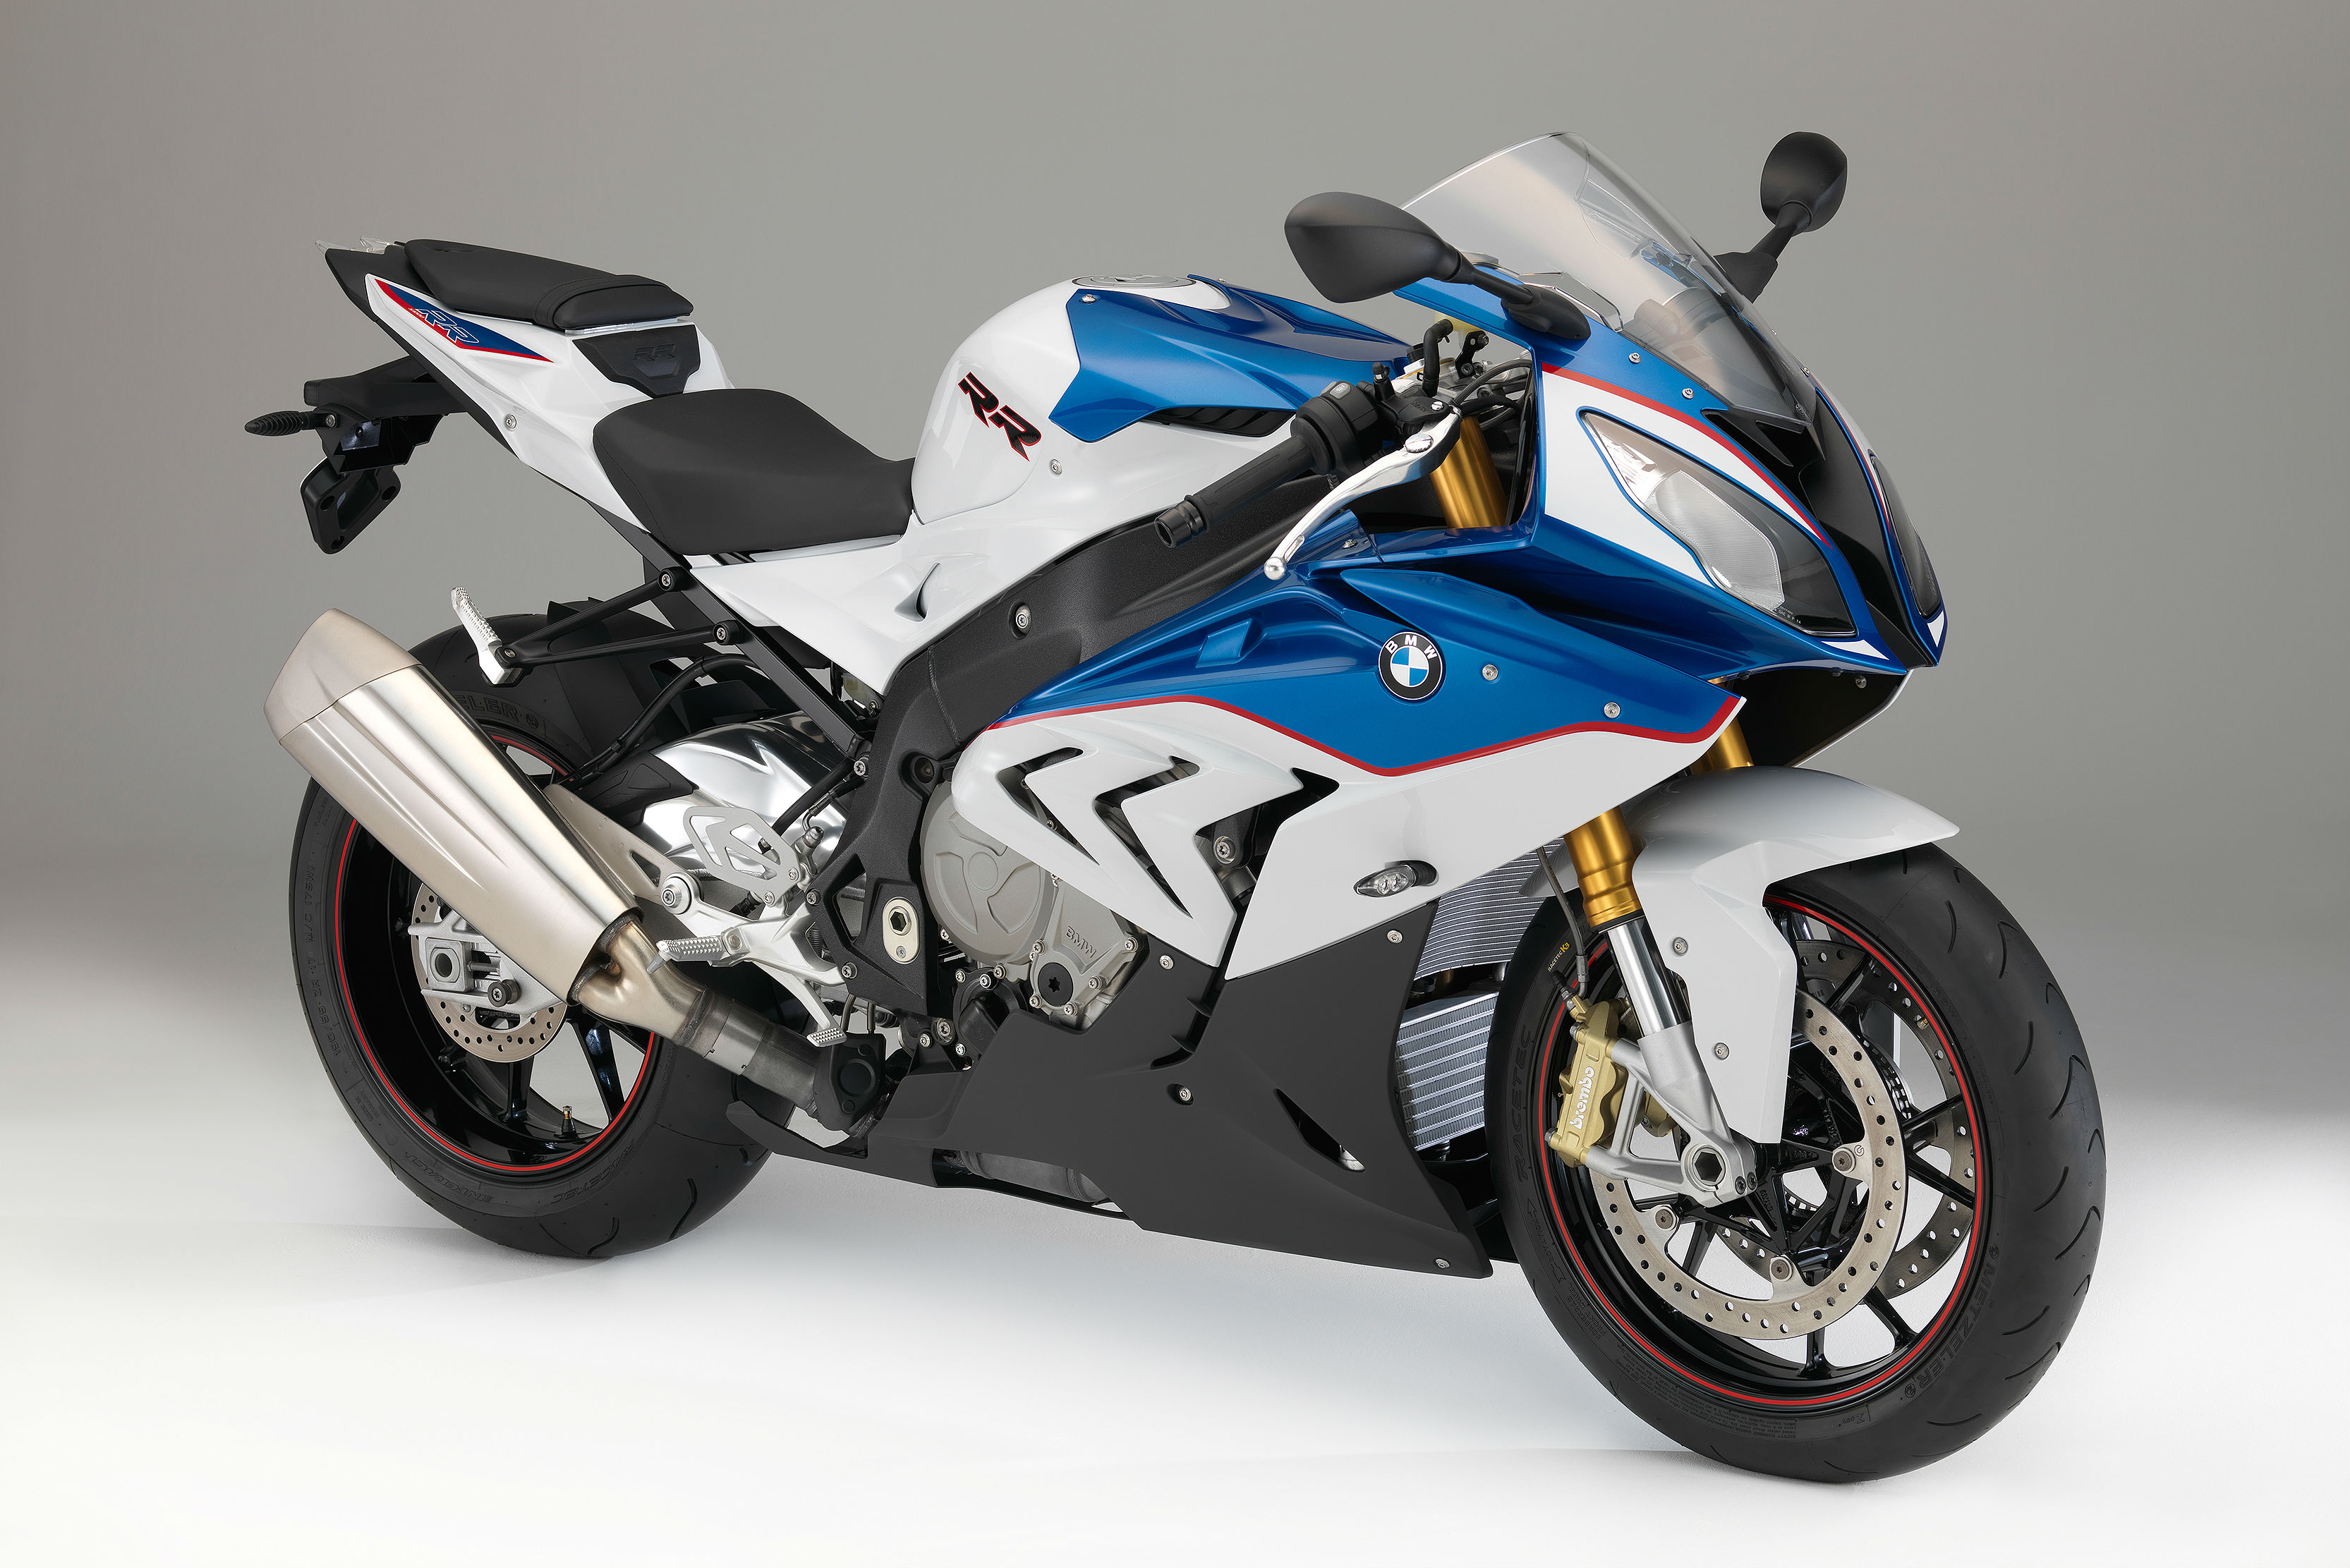 Top 10 best-selling bikes over 125cc